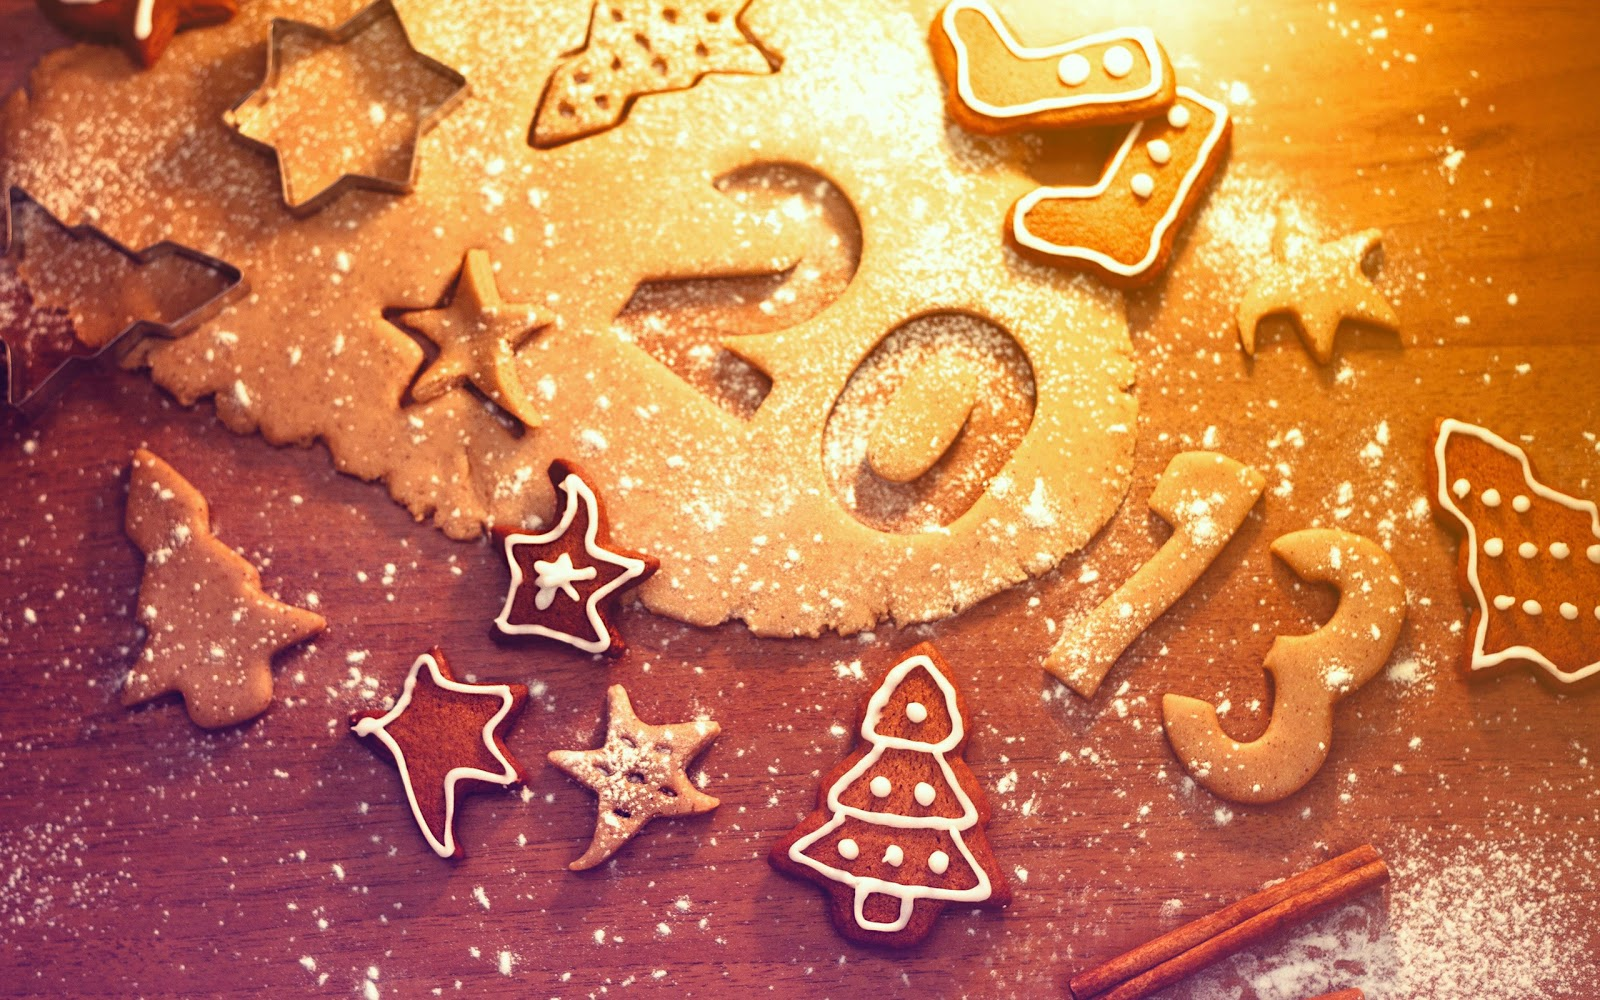 http://2.bp.blogspot.com/-YlBlI1XEQ9Y/UNrxKlWrsYI/AAAAAAAACCM/Hg553k7QY4A/s1600/Happy+New+Year+2013+High+Definition+Wallpapers.jpg